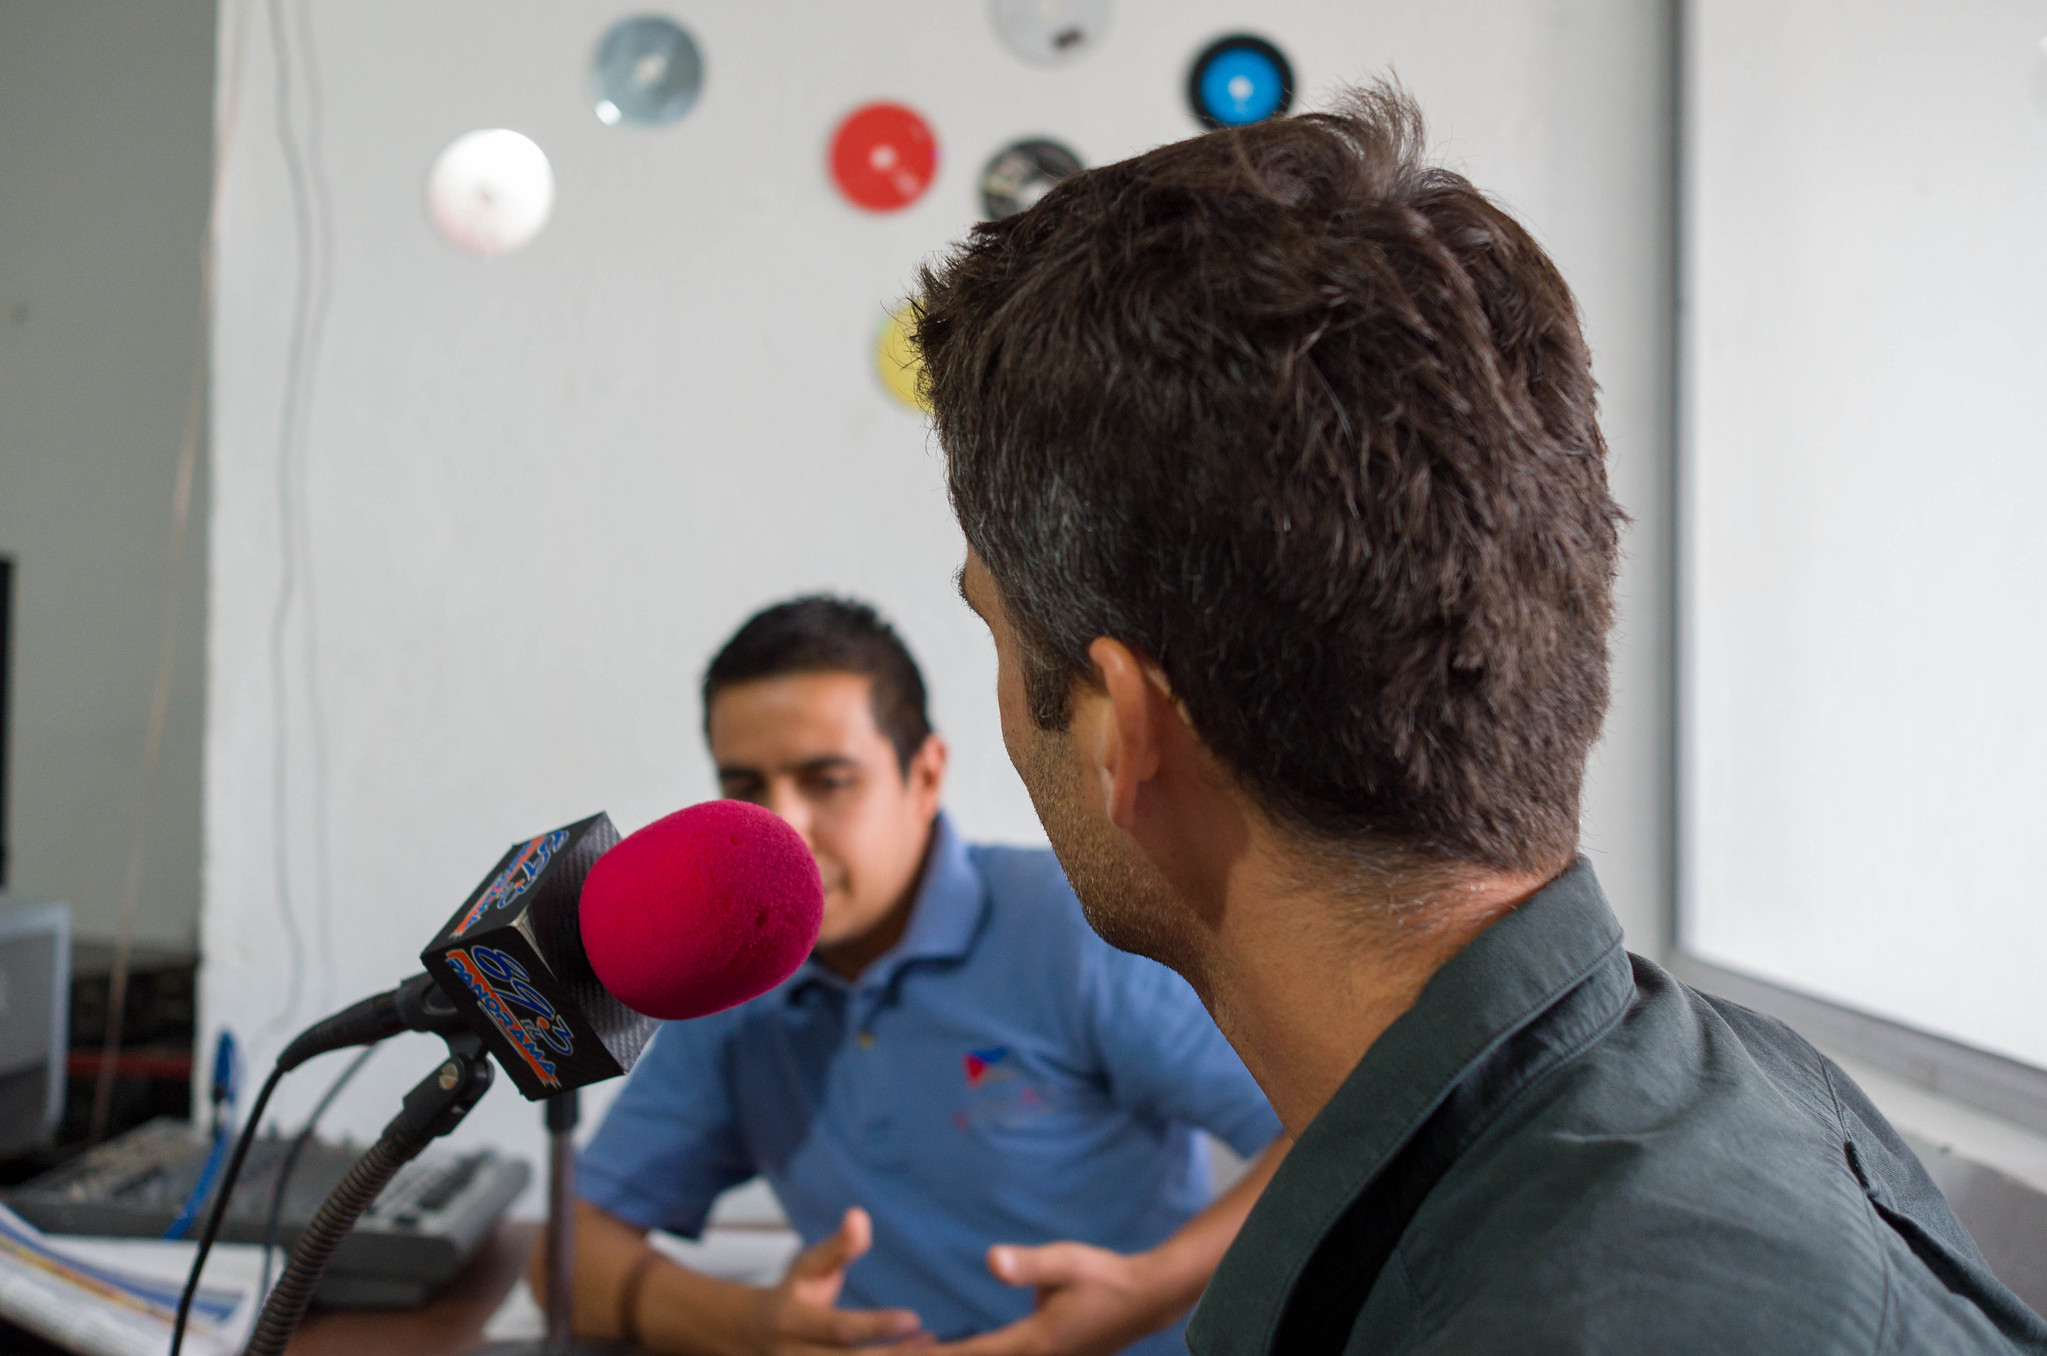 Peter was interviewed for the local Radio station.